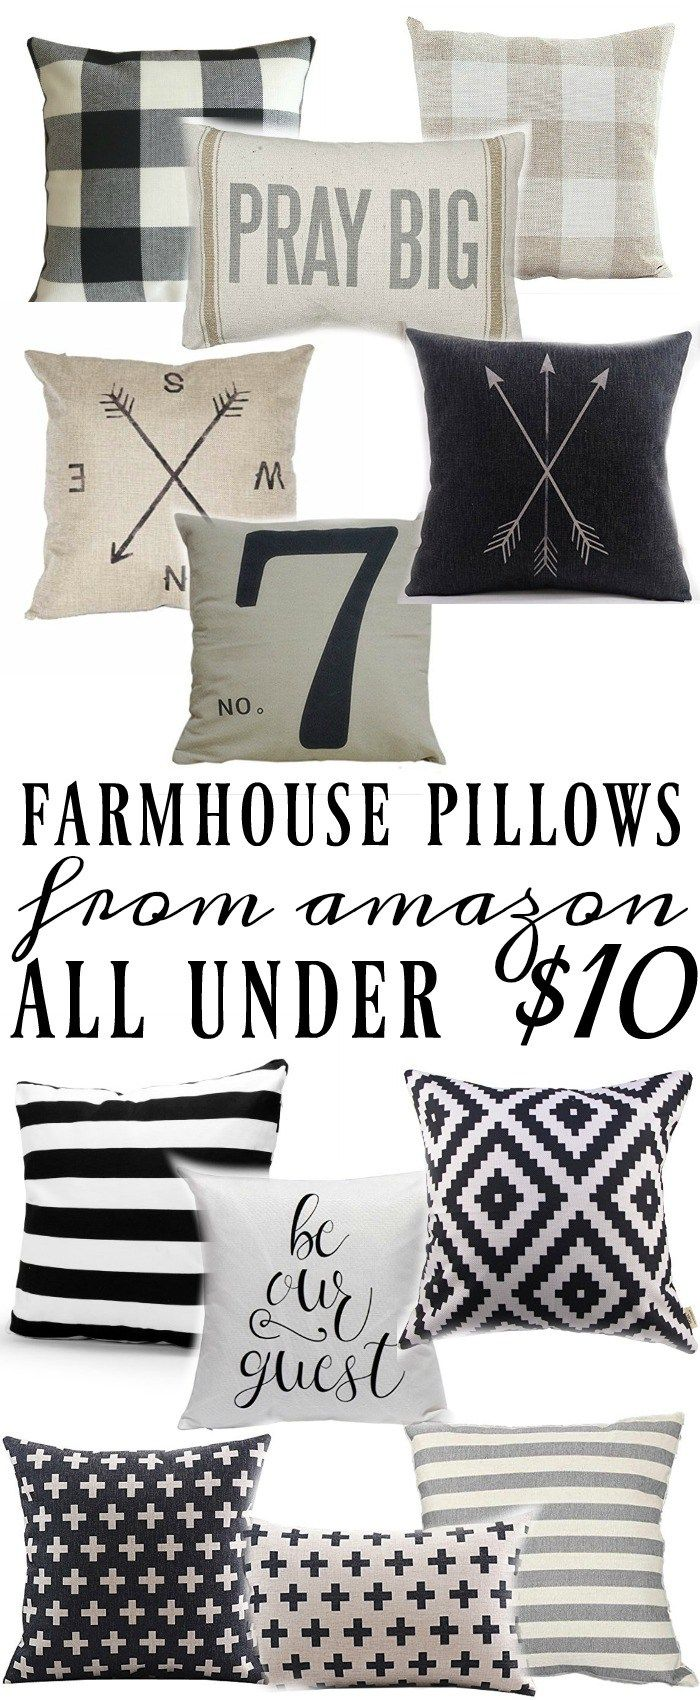 Cheap Decorative Pillows Under $10 Glamorous Farmhouse Style Pillows All Under $10  Big Pillows Grey Stripes Decorating Design